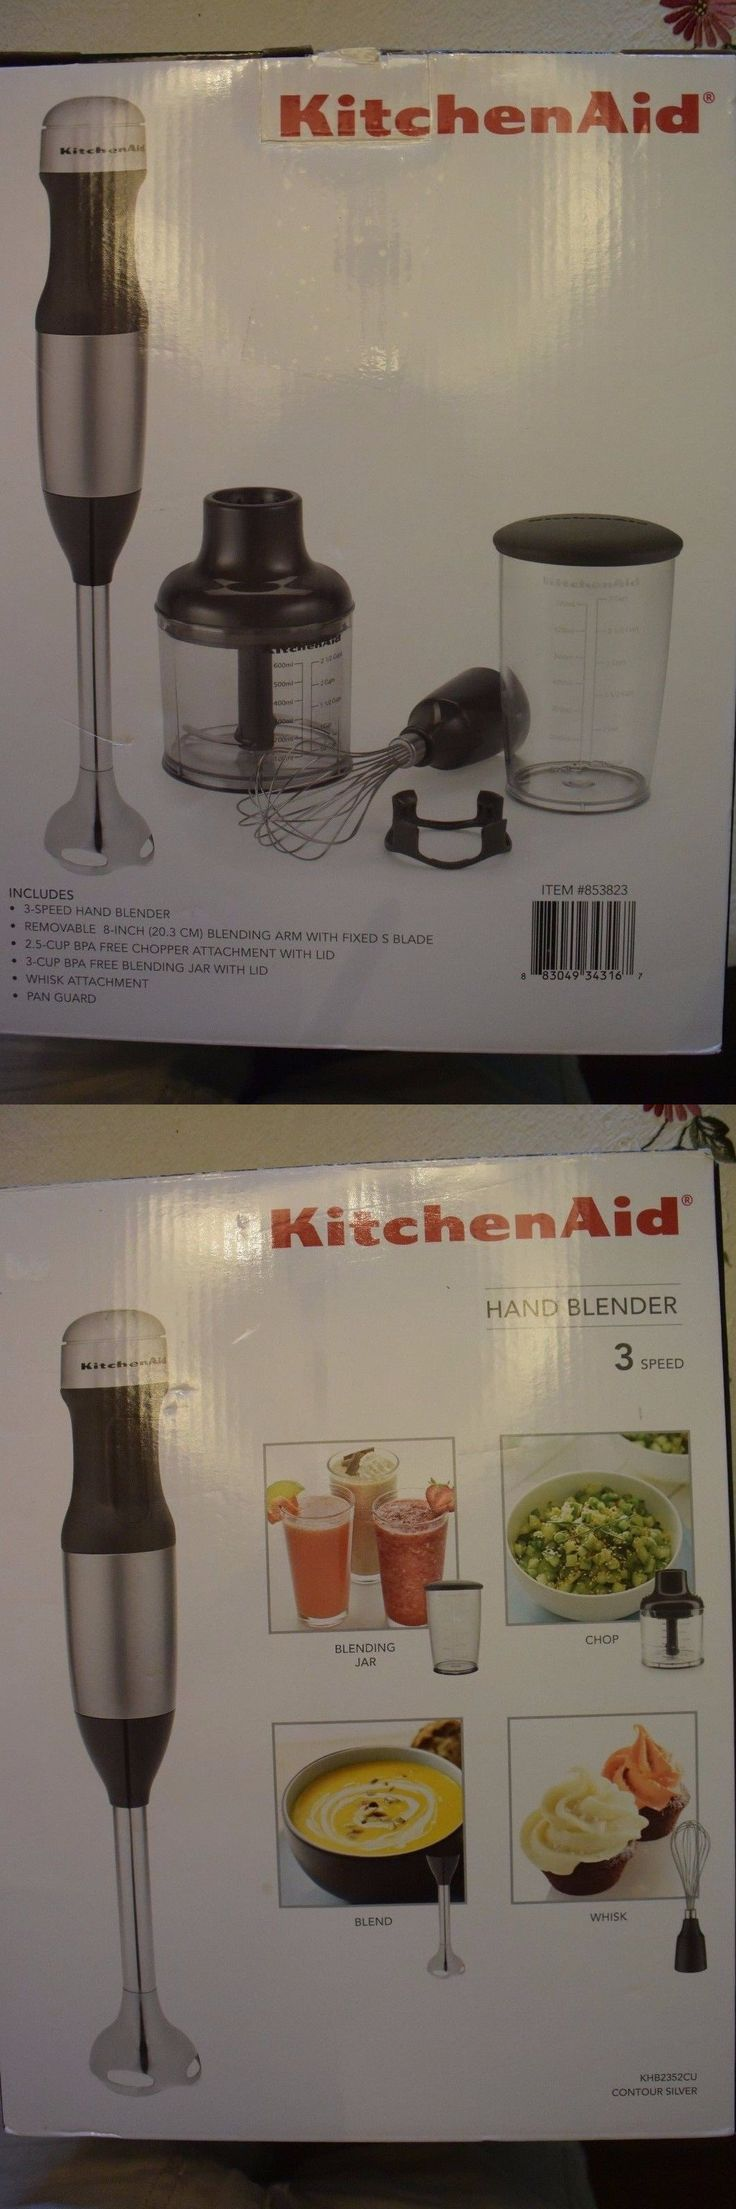 Kitchenaid 3 Speed Hand Immersion Blender With Accessories Page 1 ...